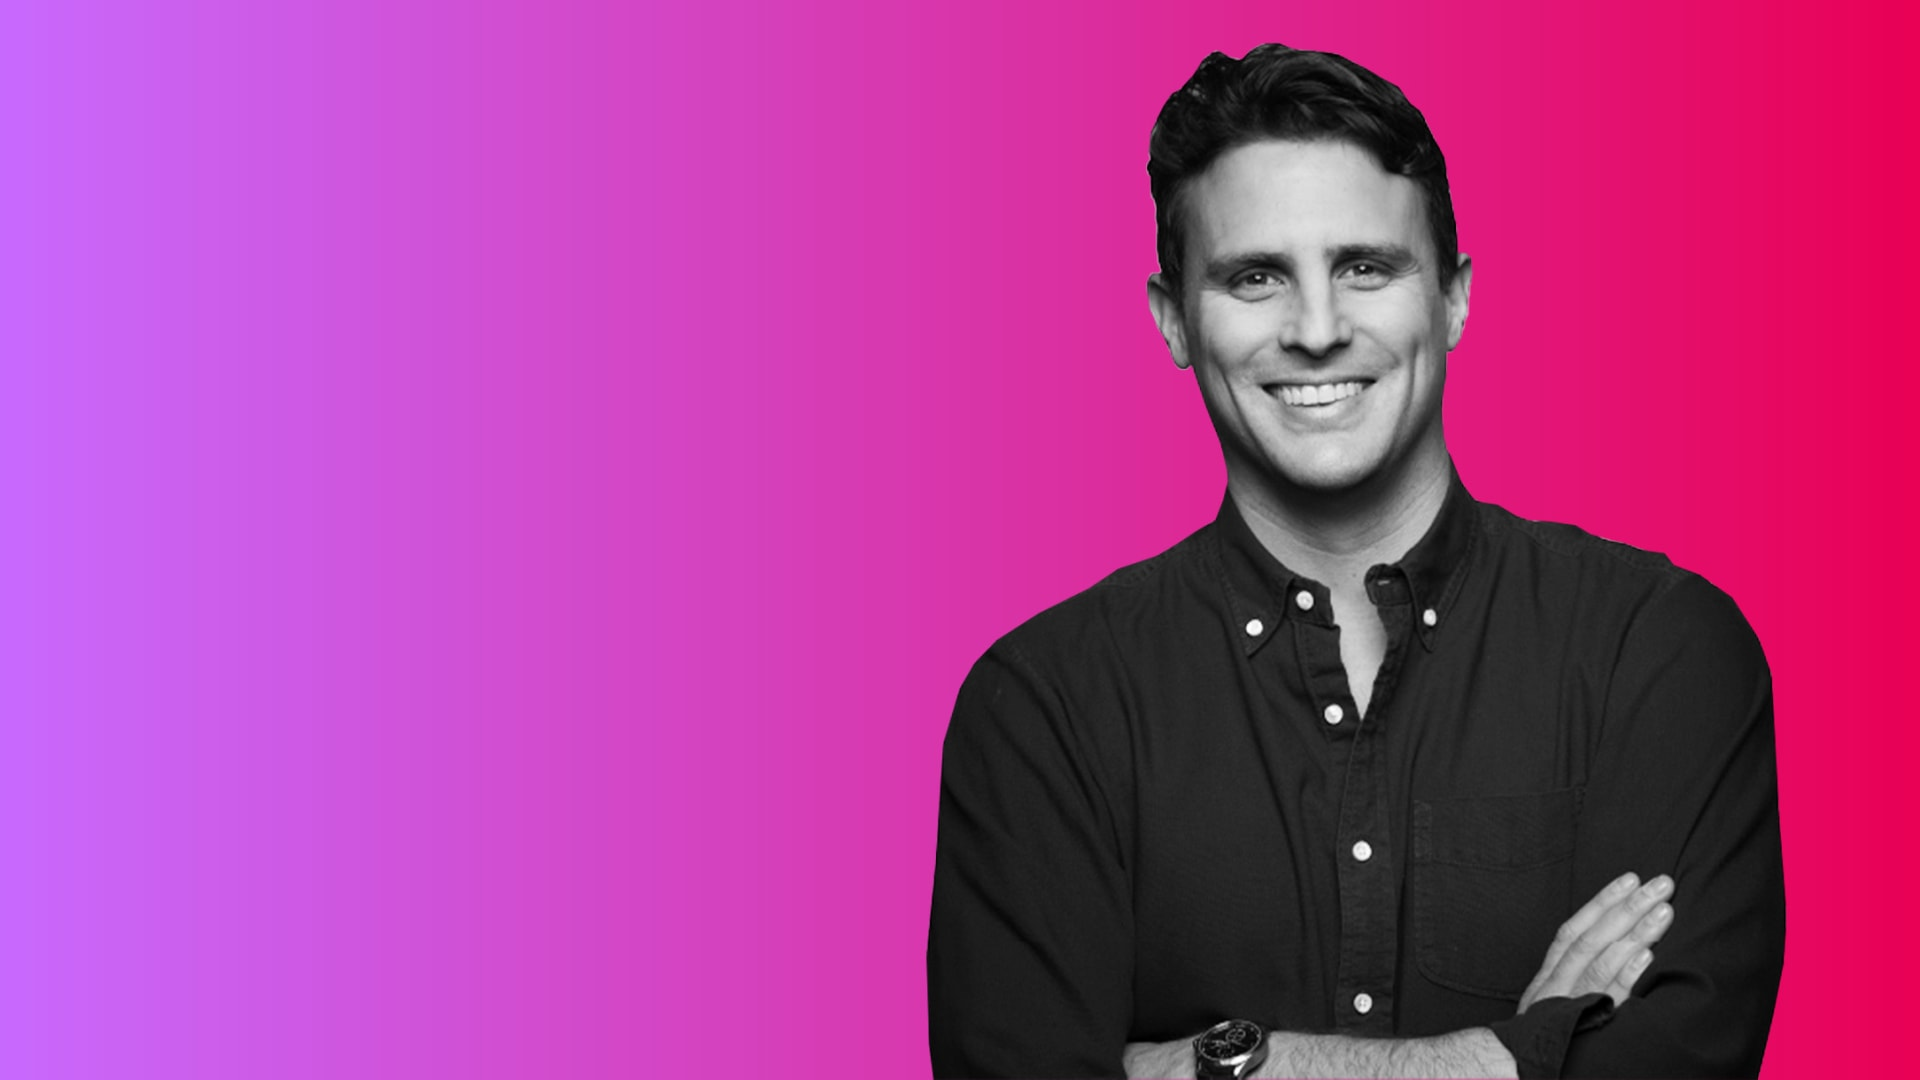 Sign Up Now: Meet Dollar Shave Club's Michael Dubin in an Exclusive Inc. Event, 3 p.m. ET Today